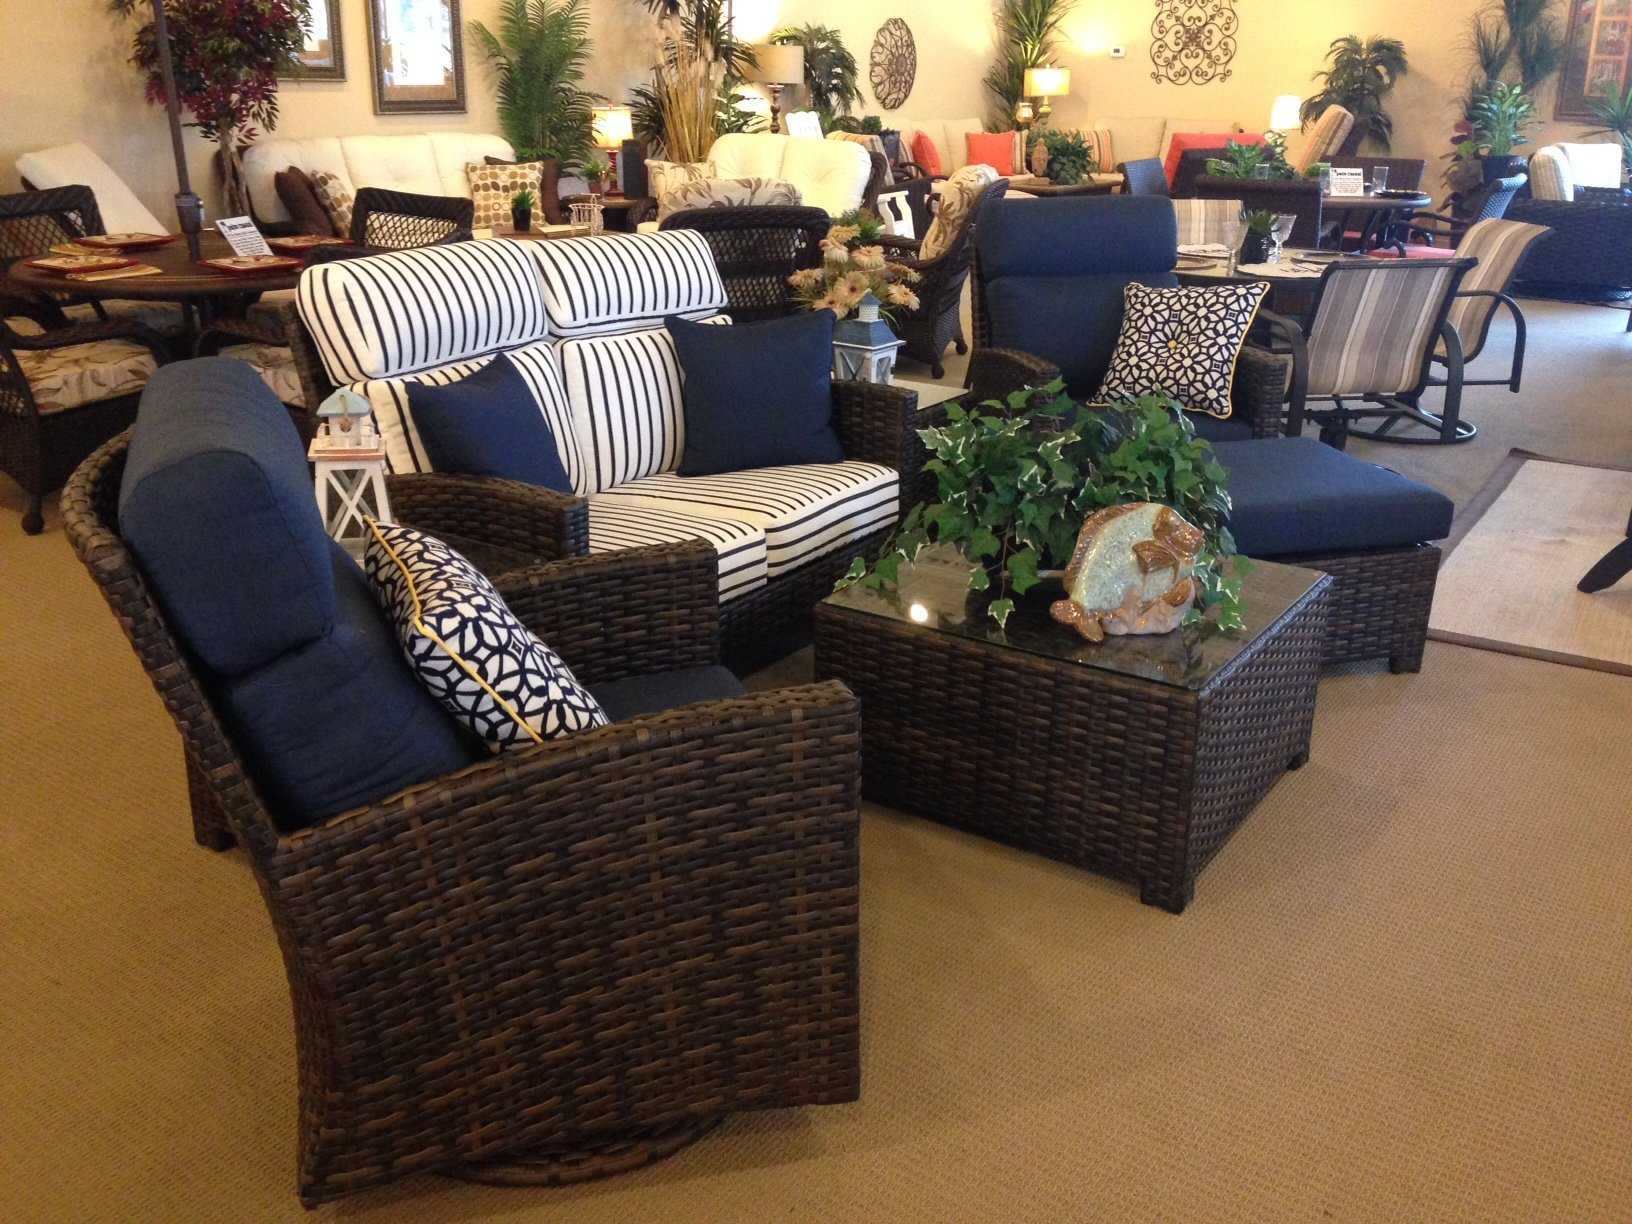 Palm Casual Patio Furniture has a NEW Outdoor Wicker